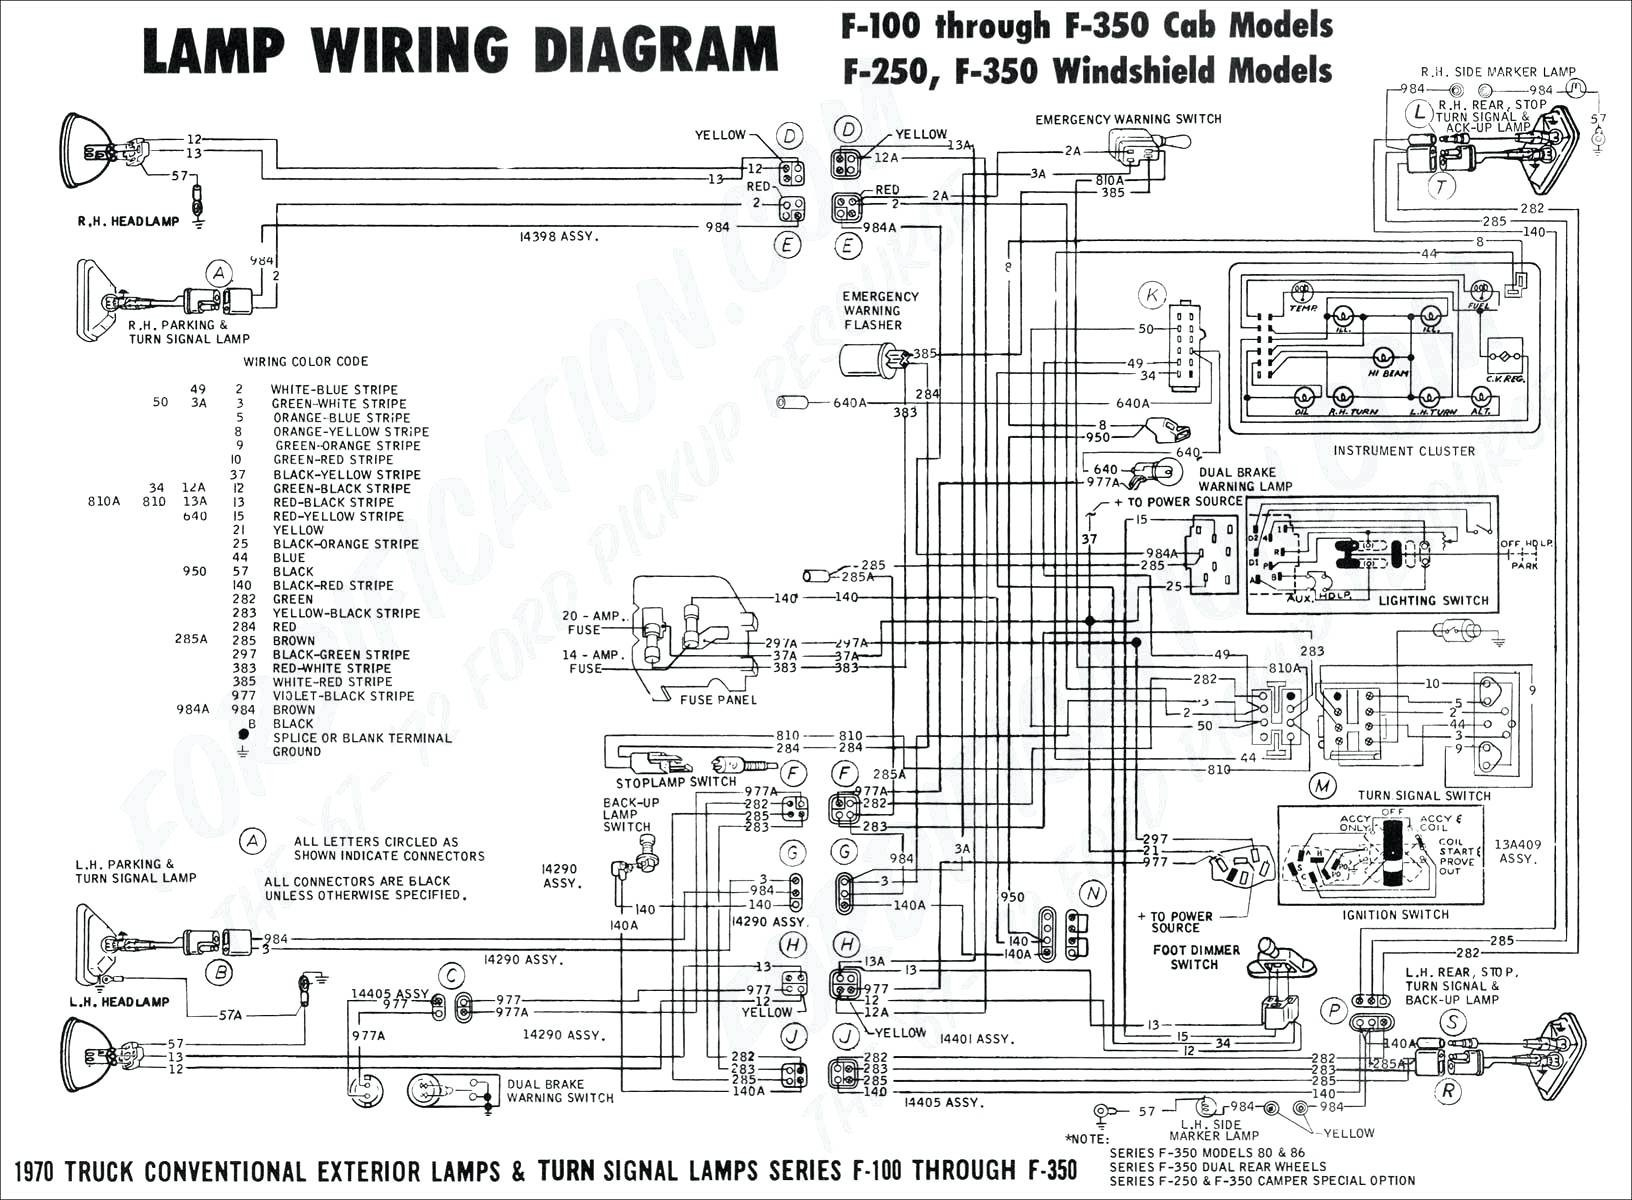 2005 Ford F150 Trailer Wiring Diagram Free Wiring Diagram